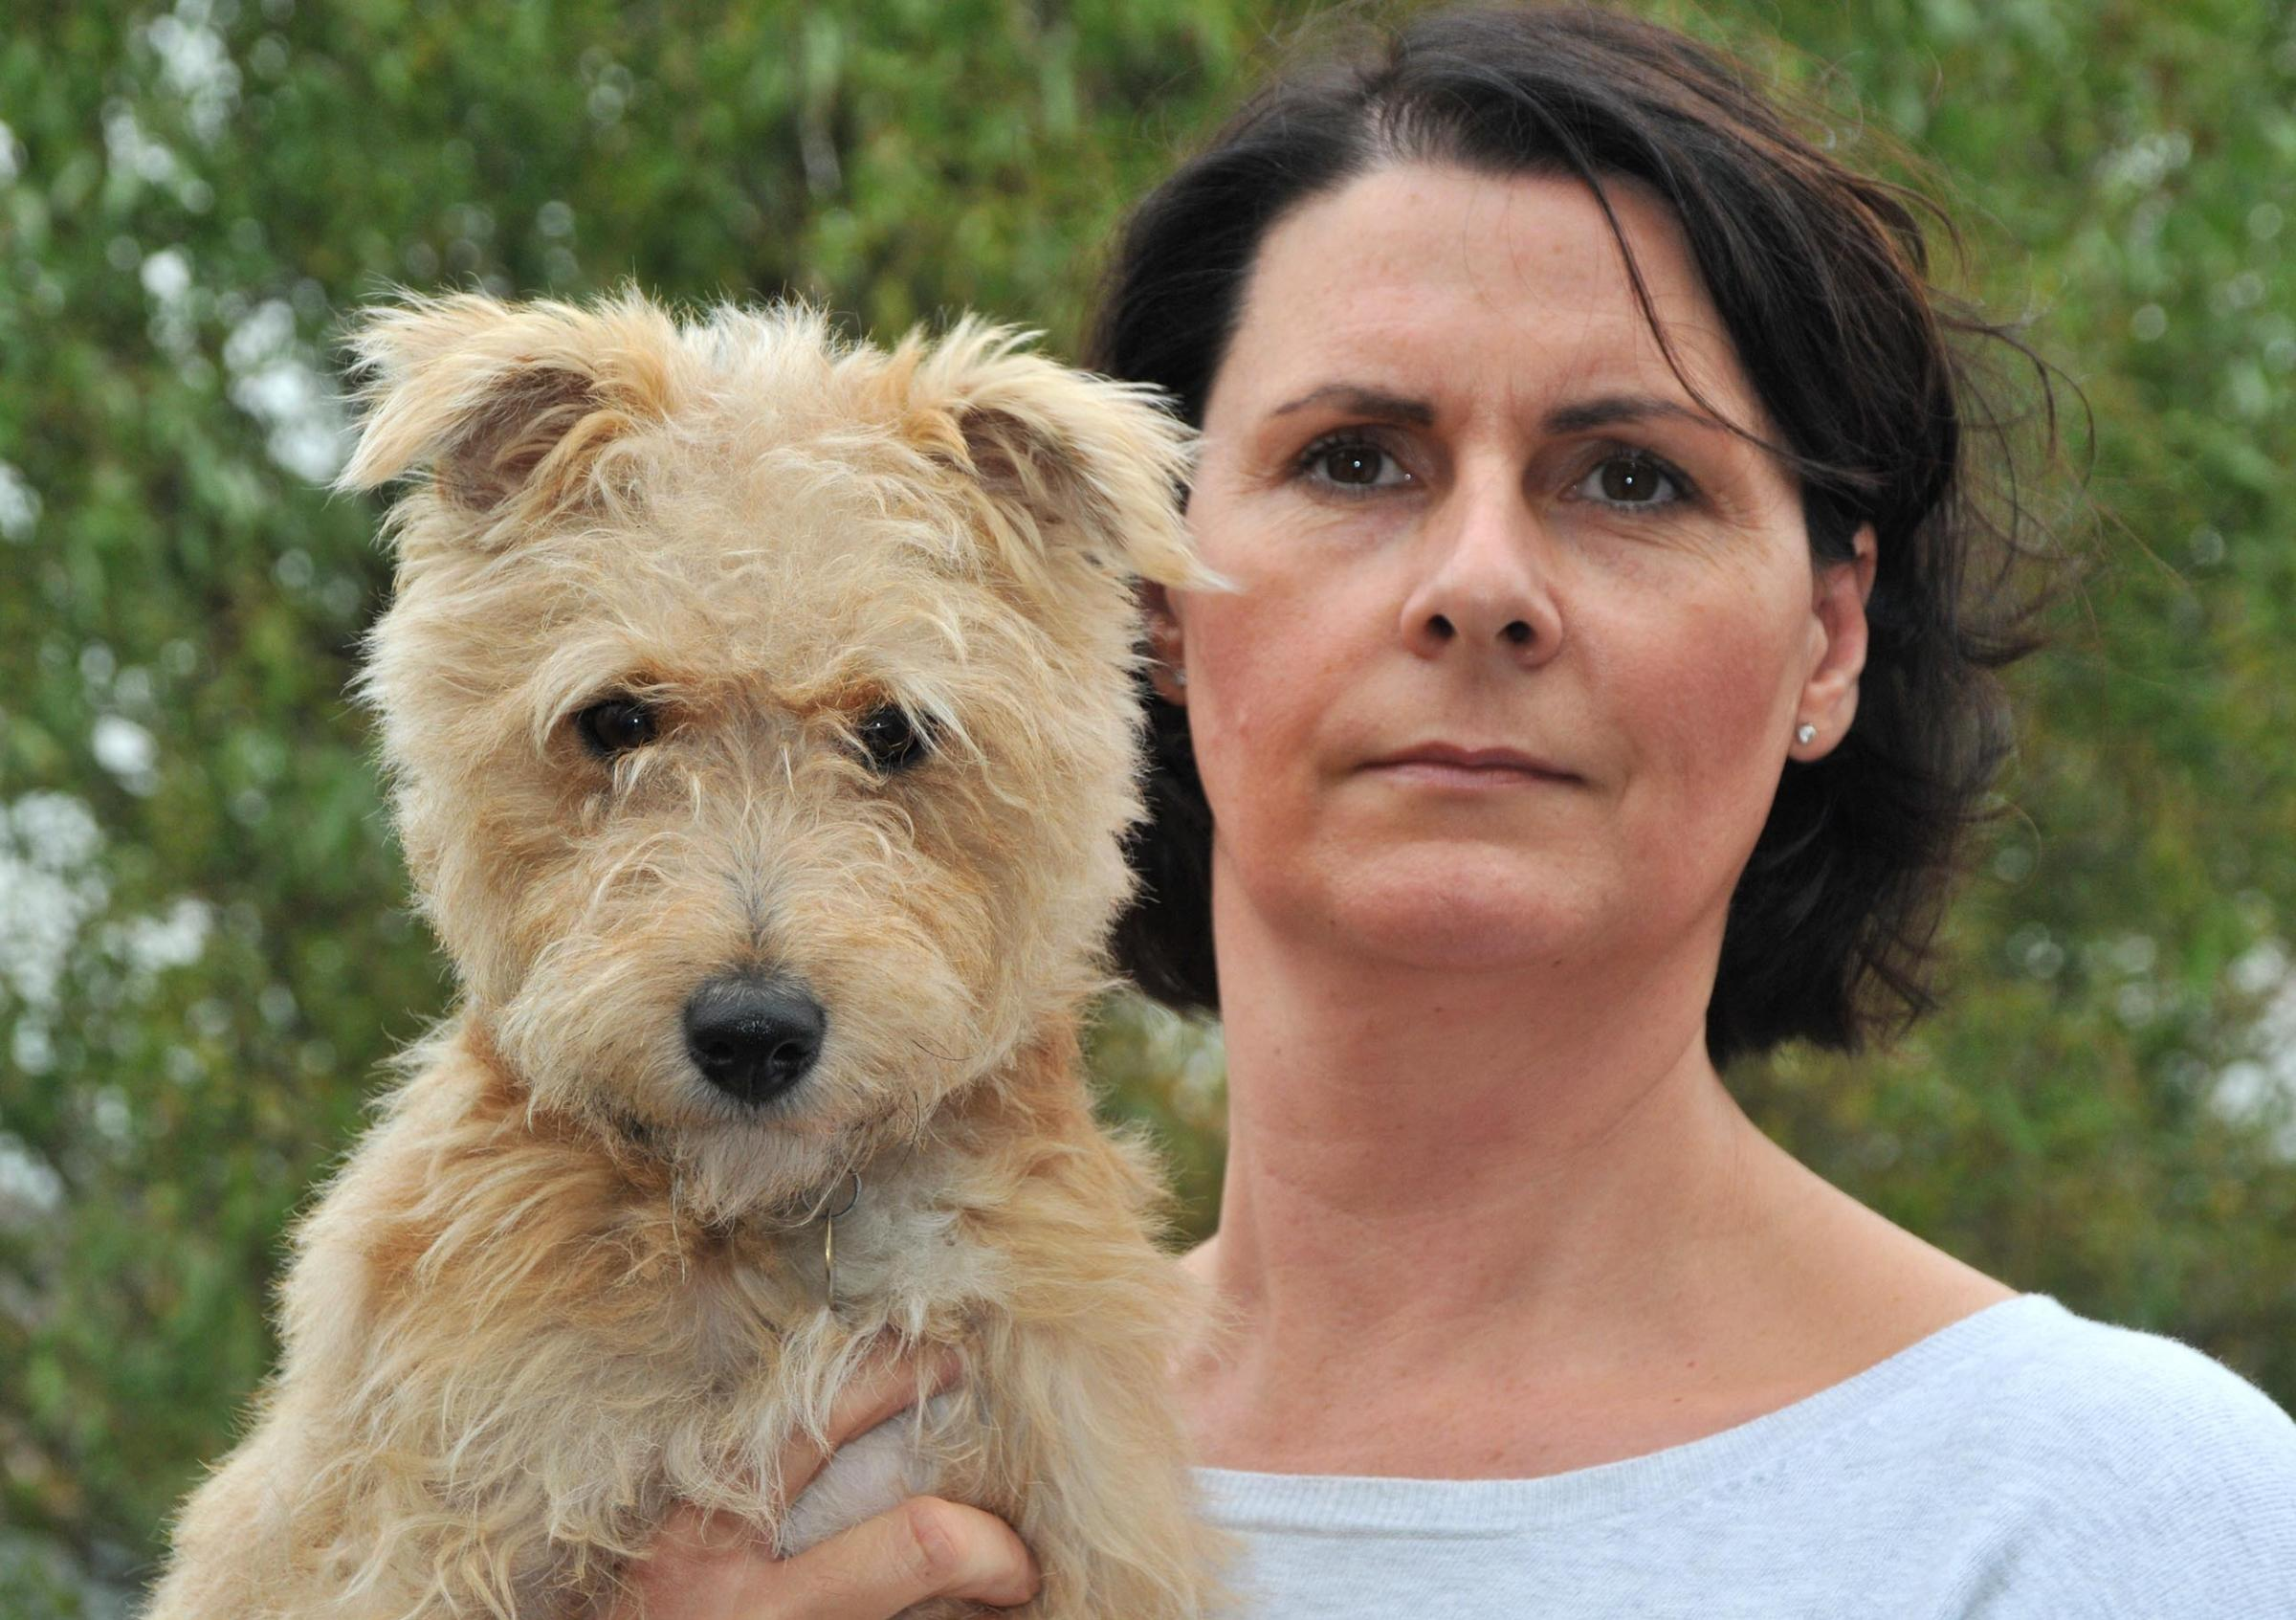 Pictured is Carolyn Rennie with her dog Jess which was savaged by a dog matching the description of one involved in a previous attack on another dog. - 4408181